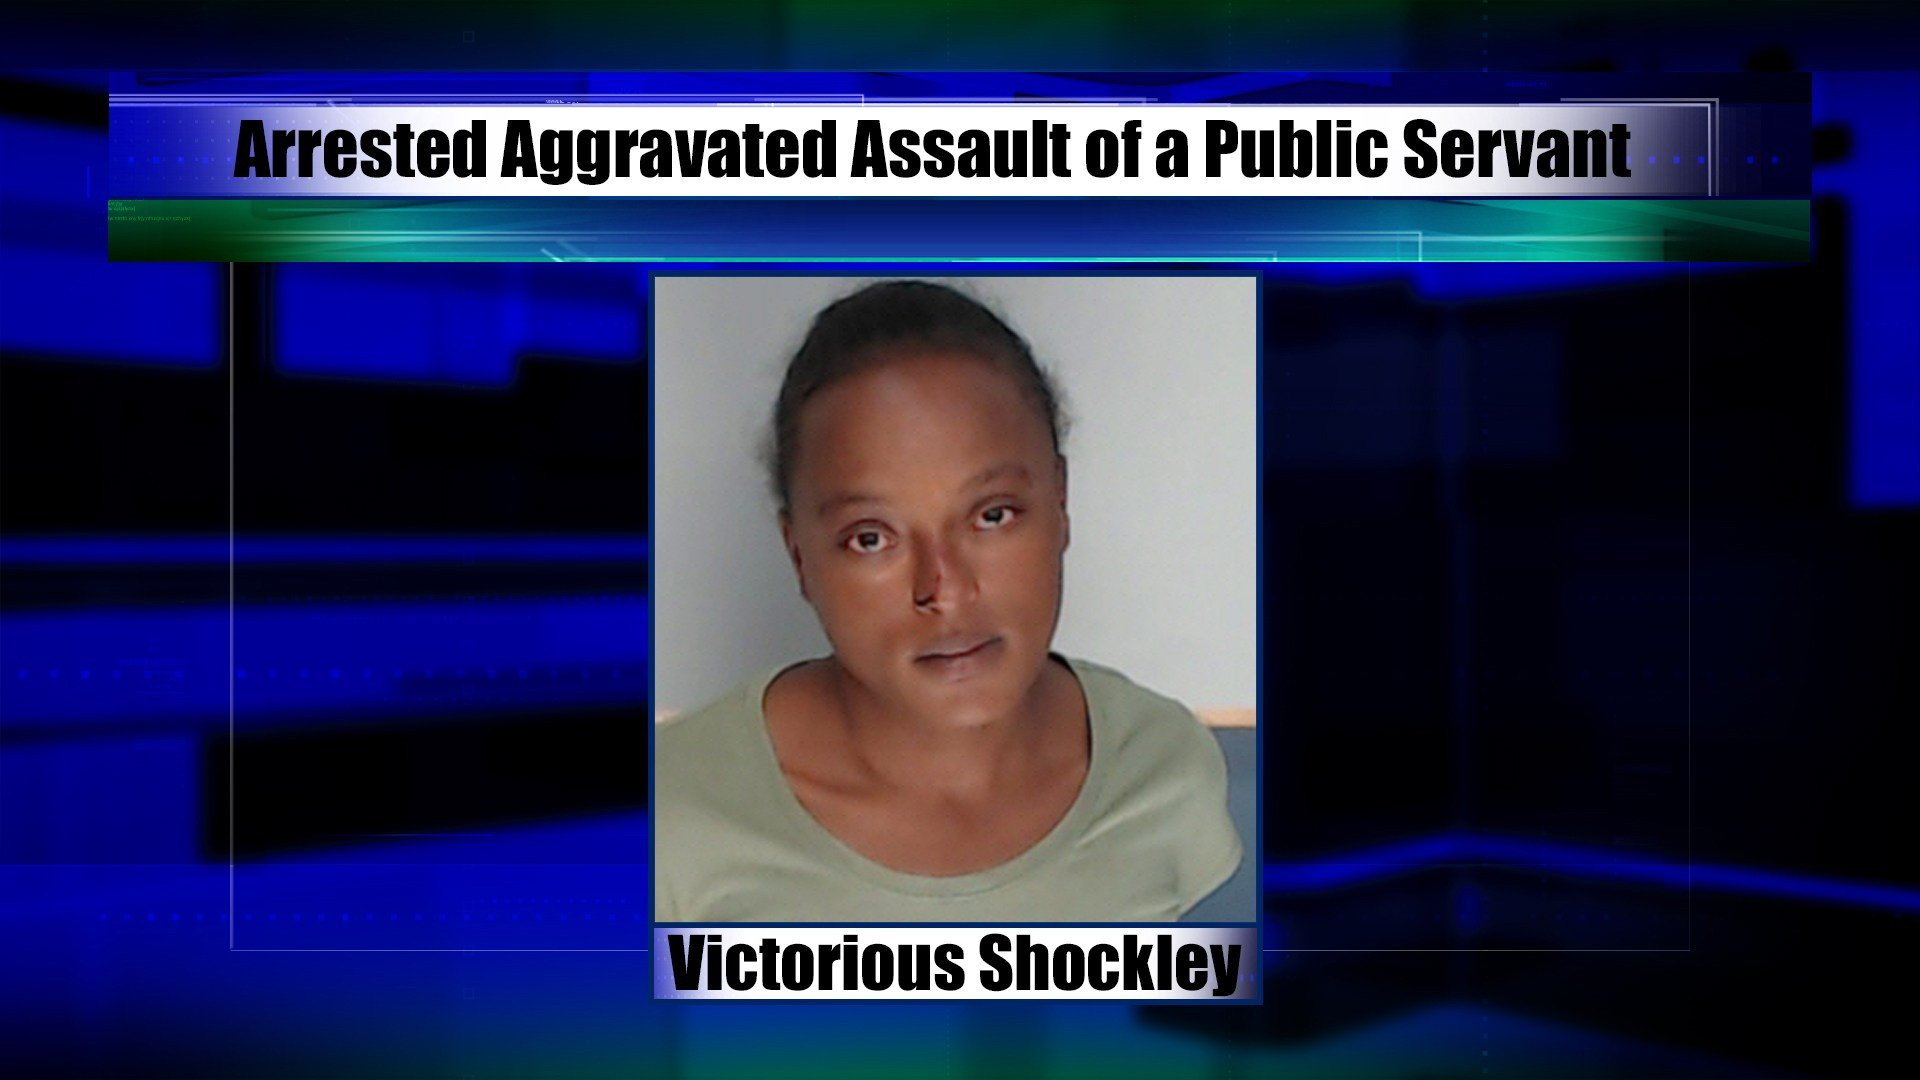 Victorious Shockley, 28, was arrested for aggravated assault of a public servant